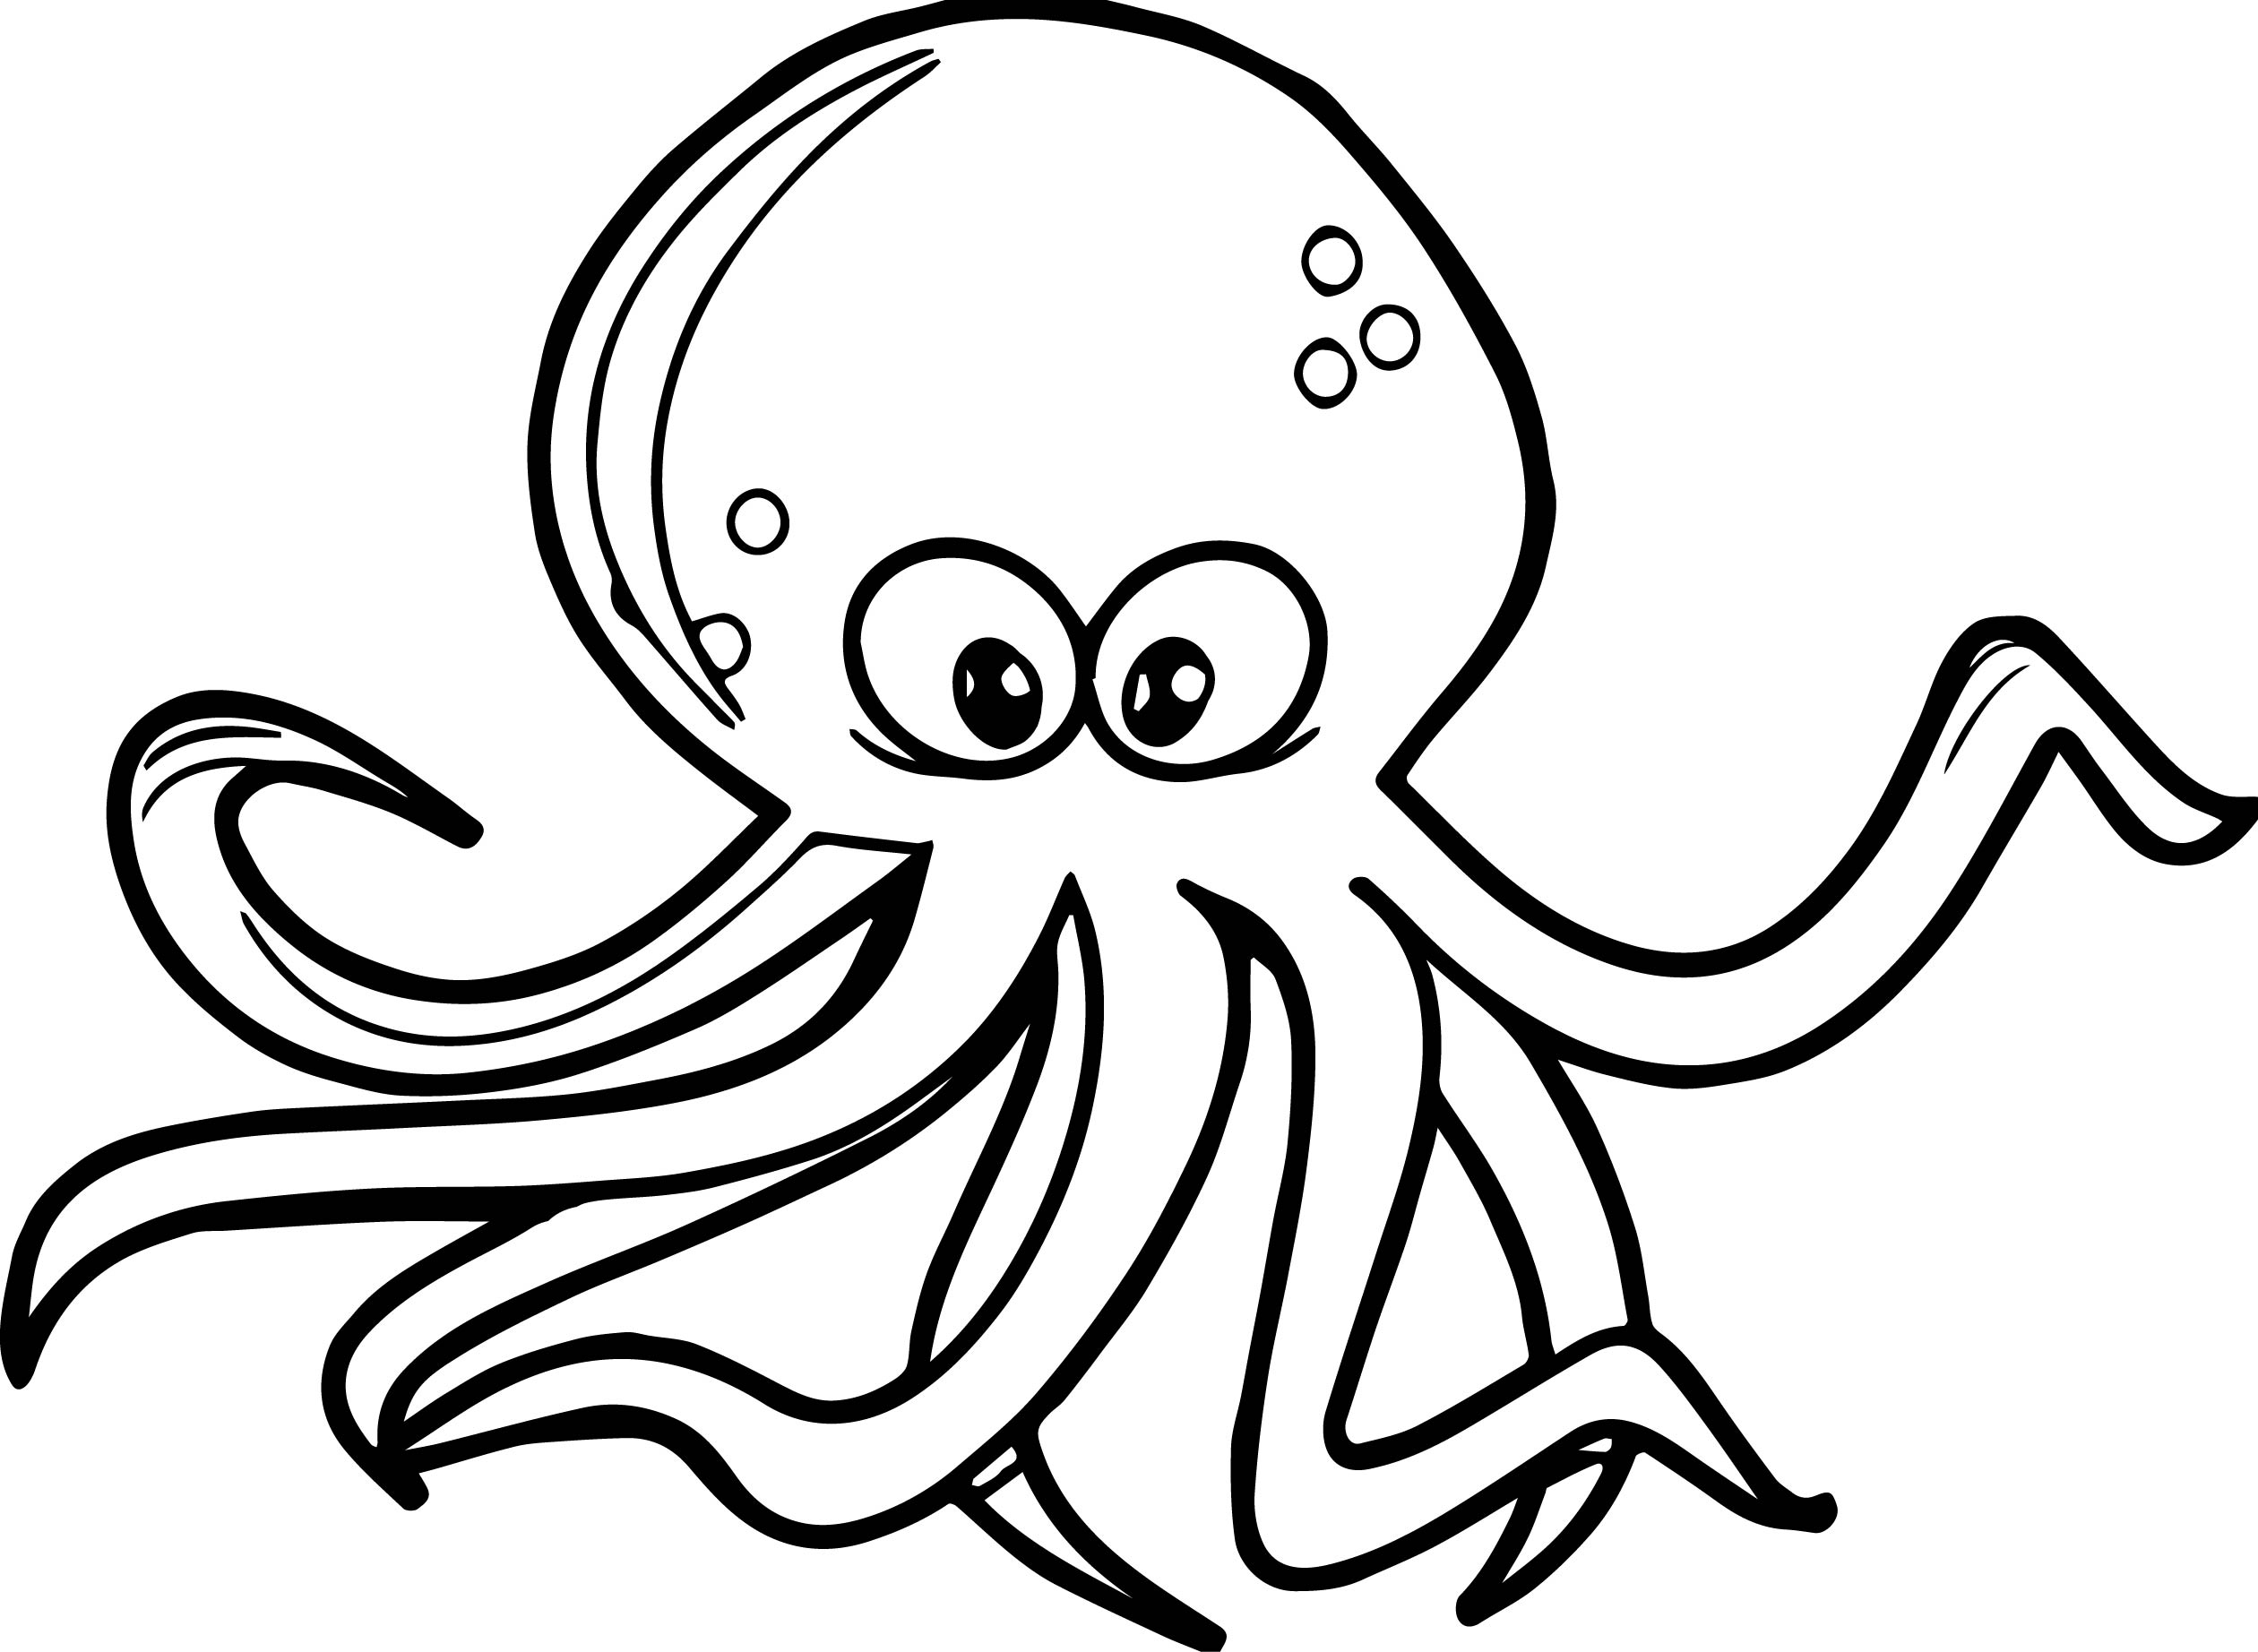 octopus pictures for coloring octopus coloring pages coloring pages to download and print for pictures coloring octopus